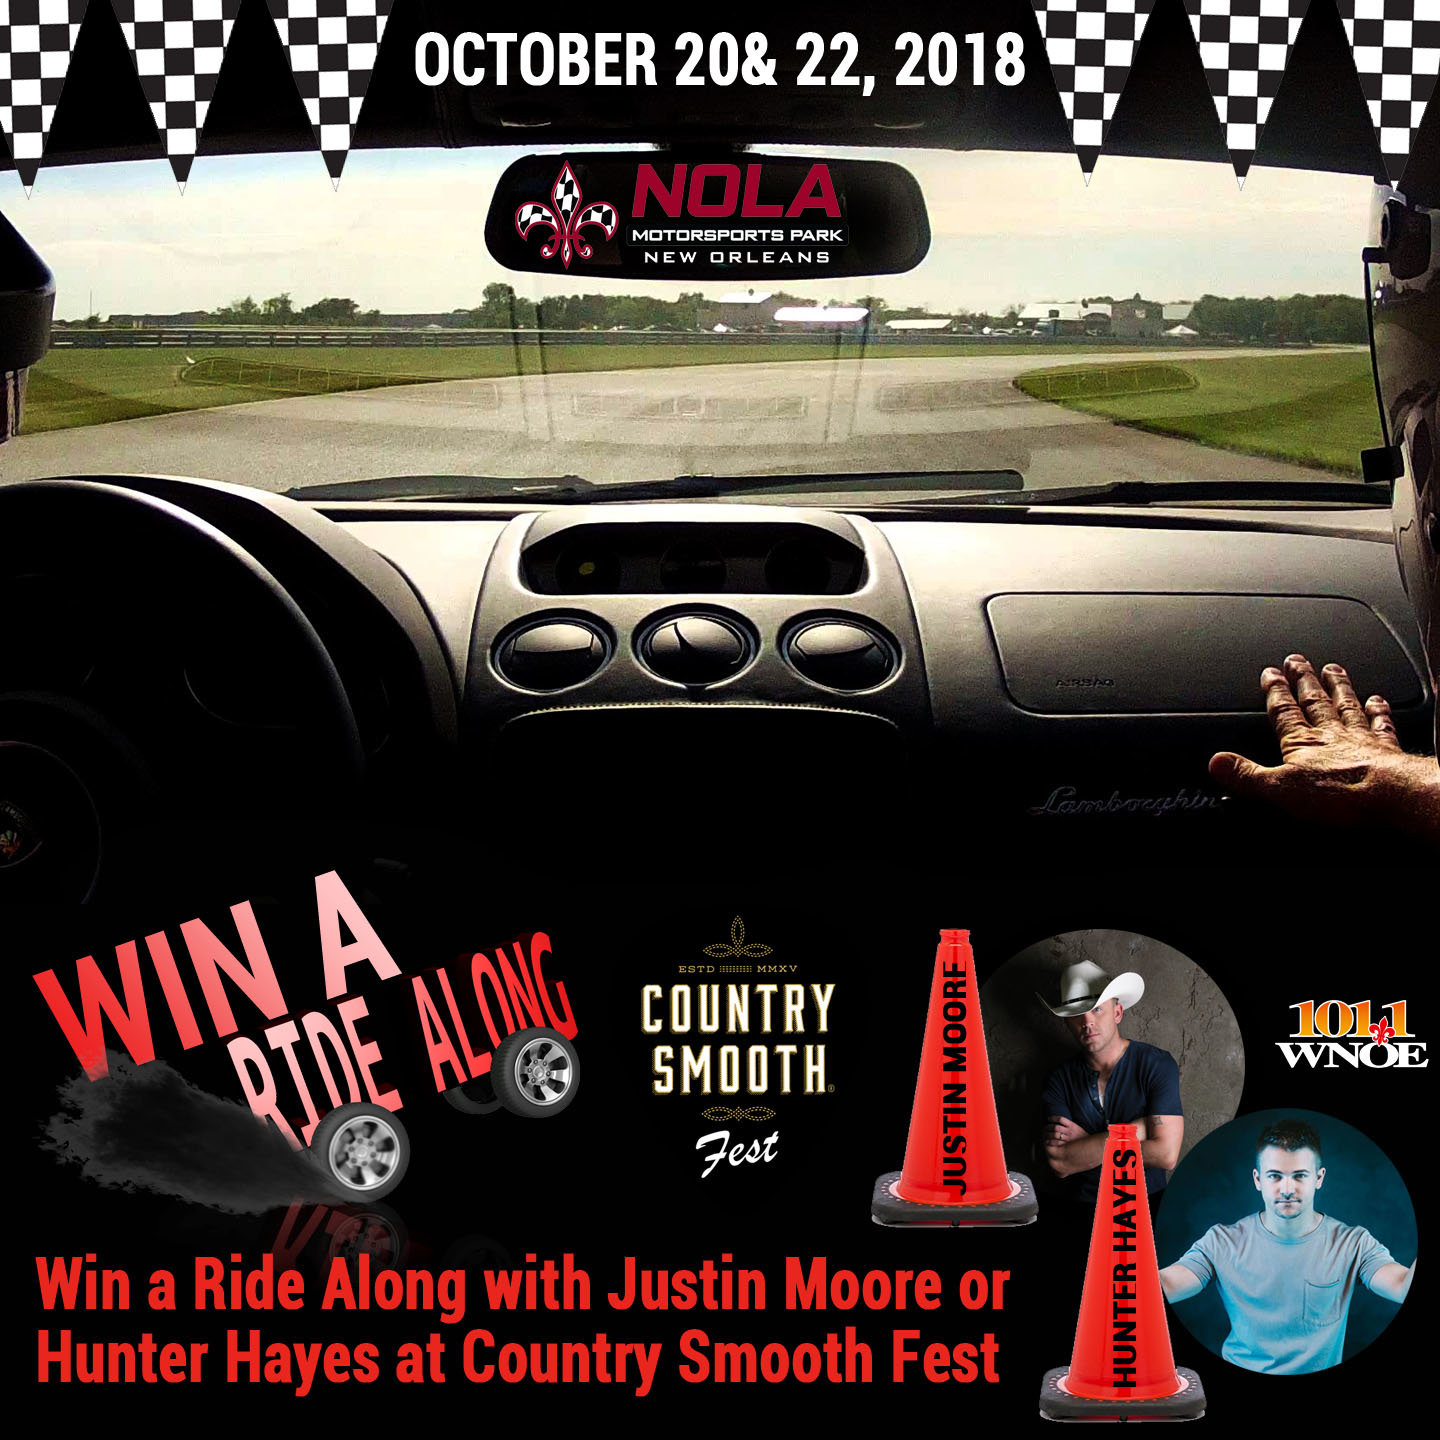 Win A Ride Along With Justin Moore Or Hunter Hayes At Country Smooth